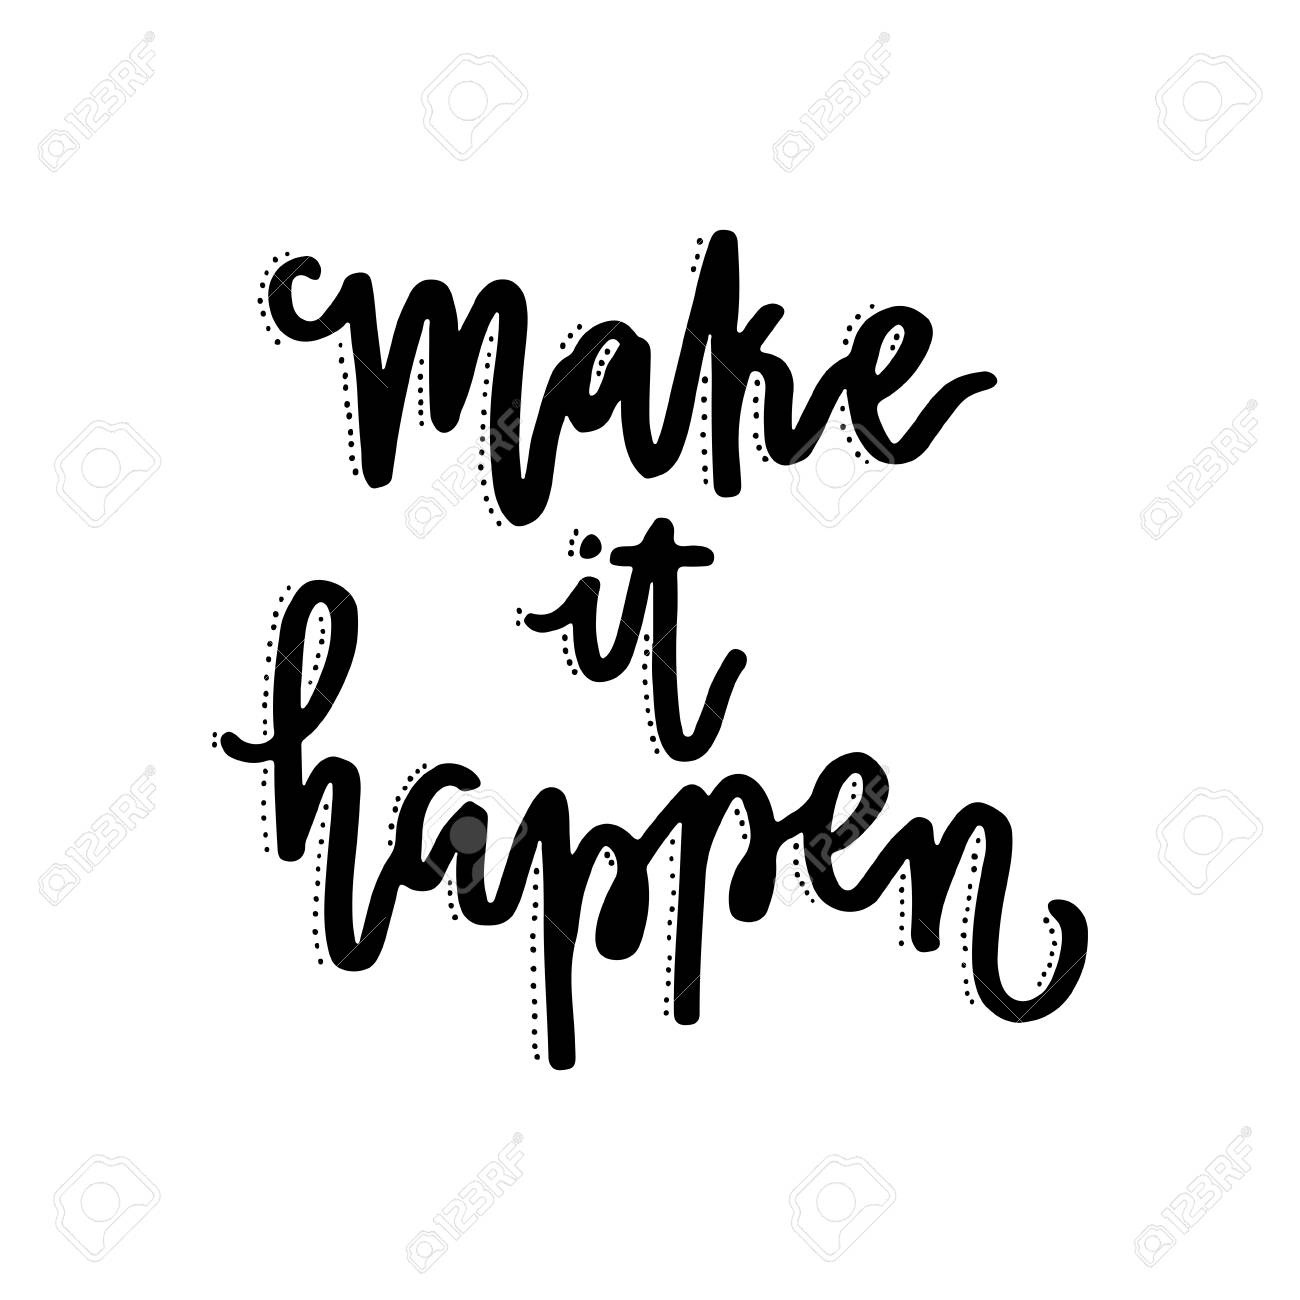 Handdrawn Lettering Of A Phrase Make It Happen Unique Typography Poster Or Apparel Design